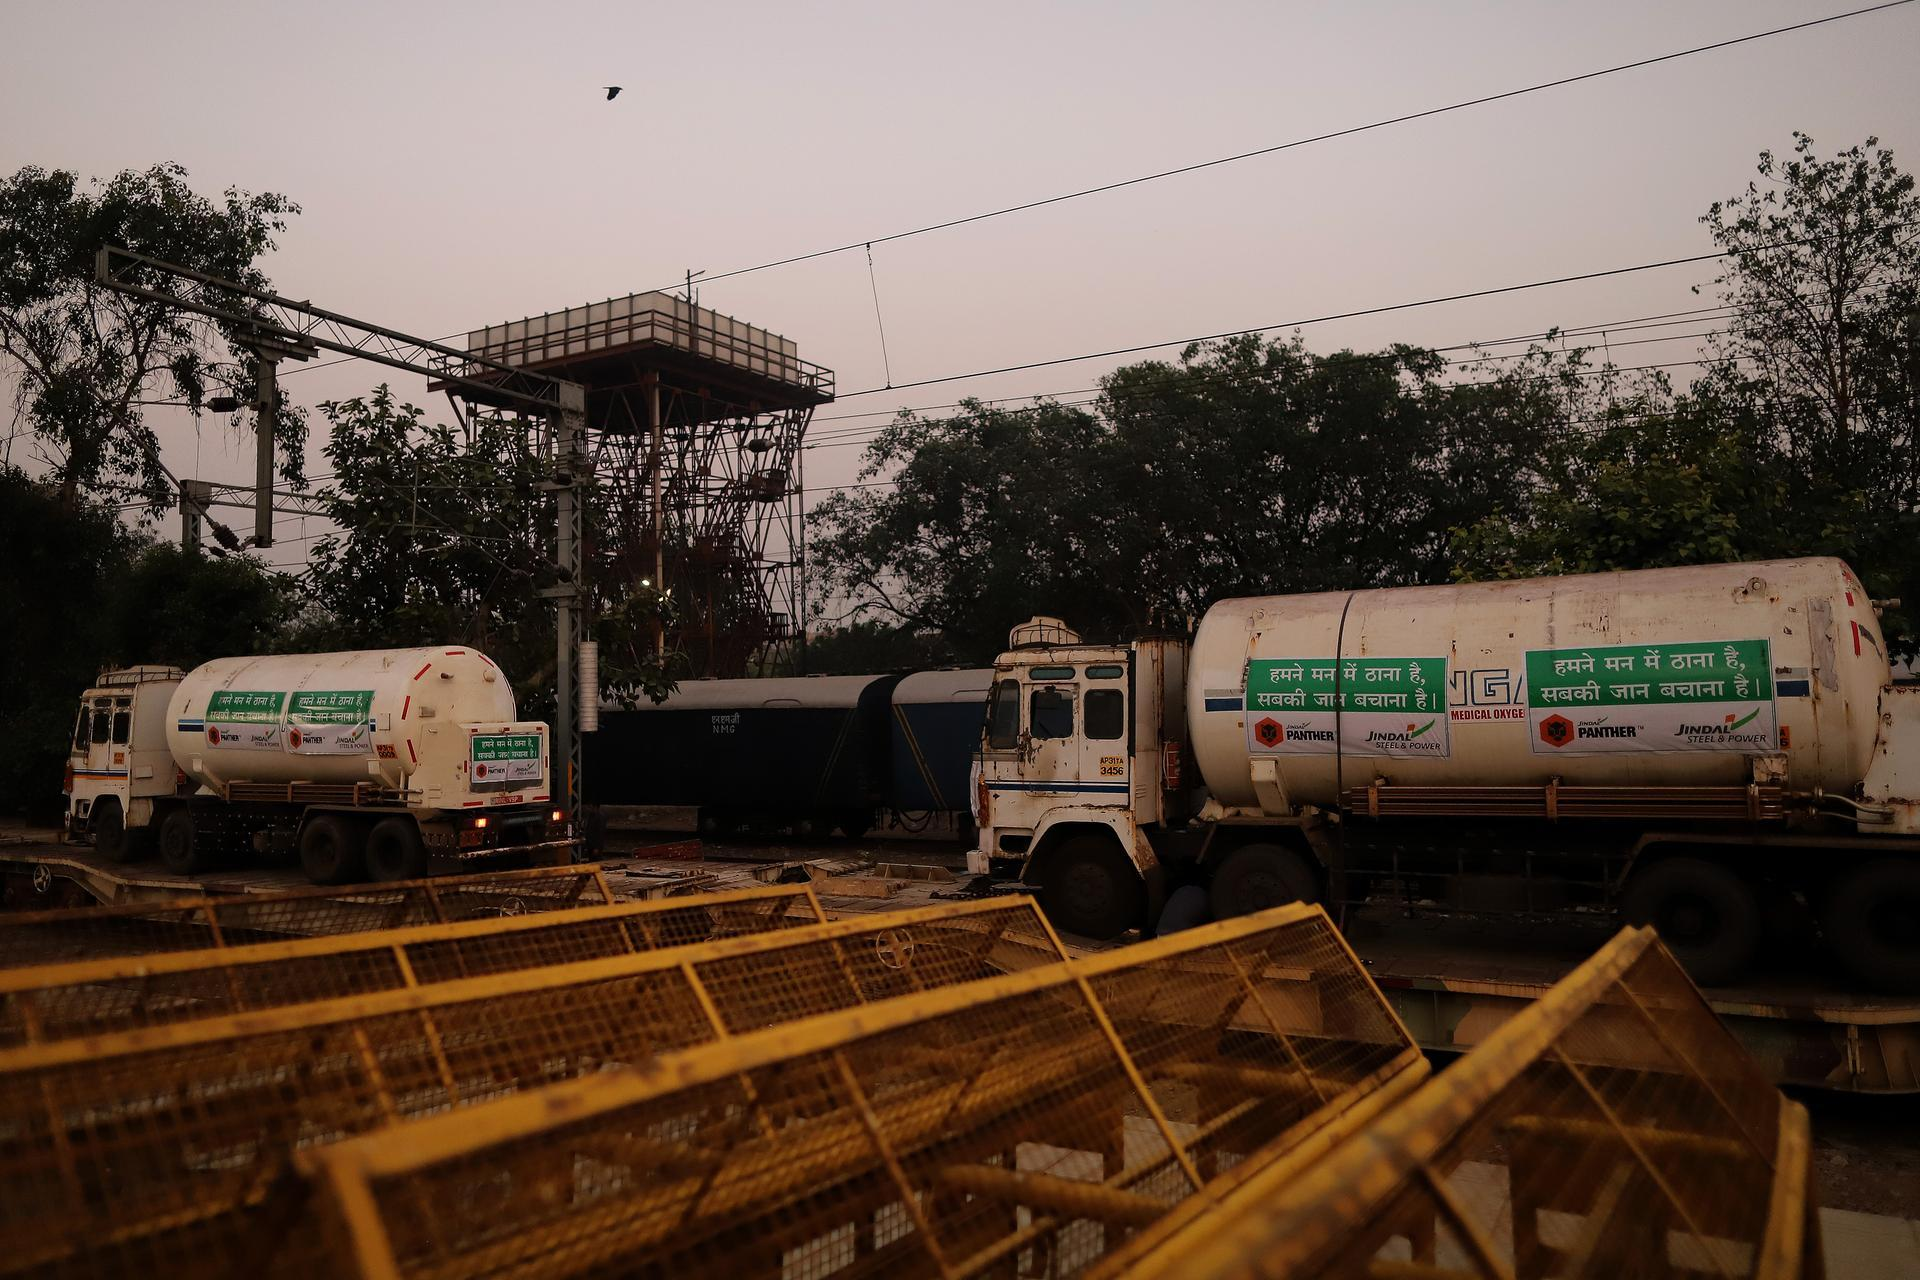 Medical oxygen tankers are delivered via the 'Oxygen Express' train to a Delhi railway station. Bloomberg